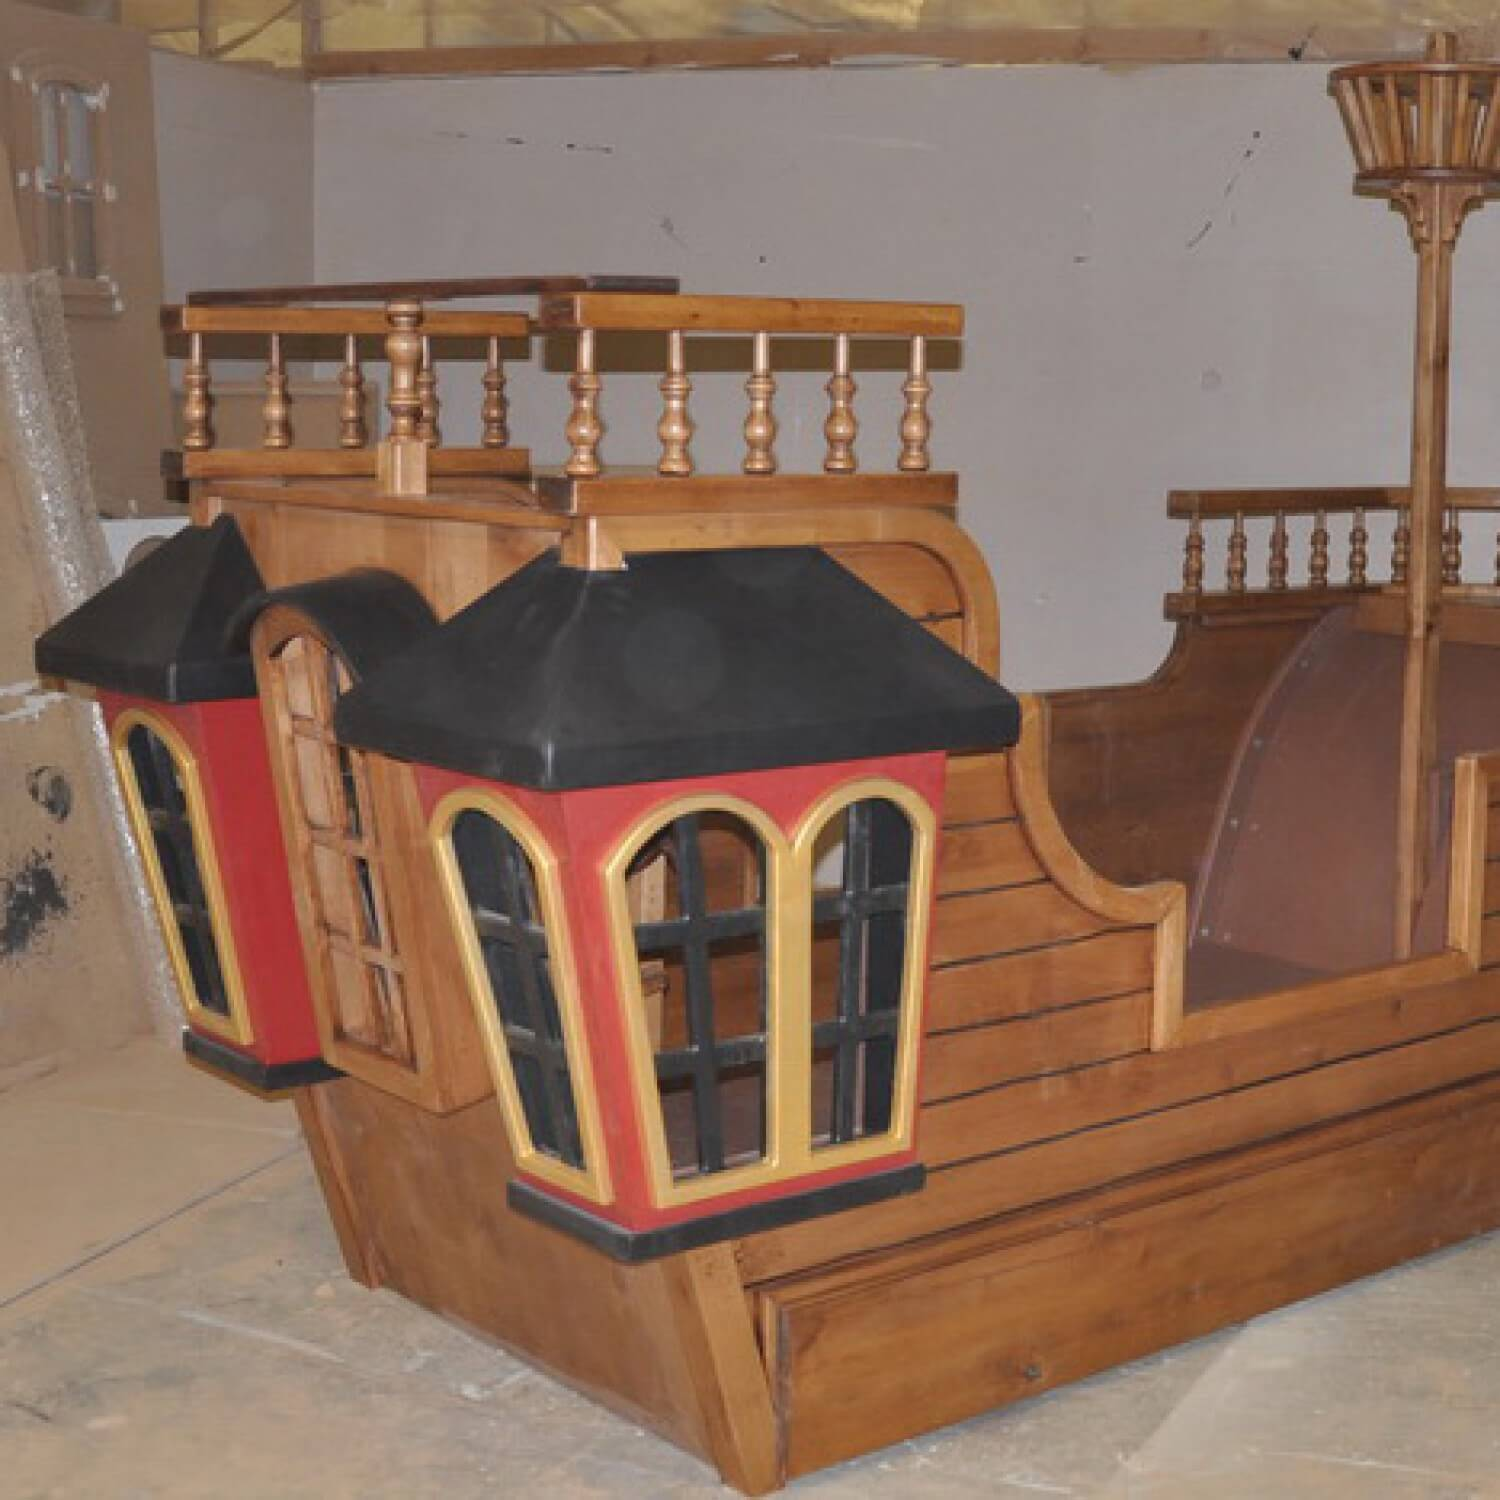 Pirate Bunk Bed | Little Tikes Pirate Bed | Little Tikes Boat Bed